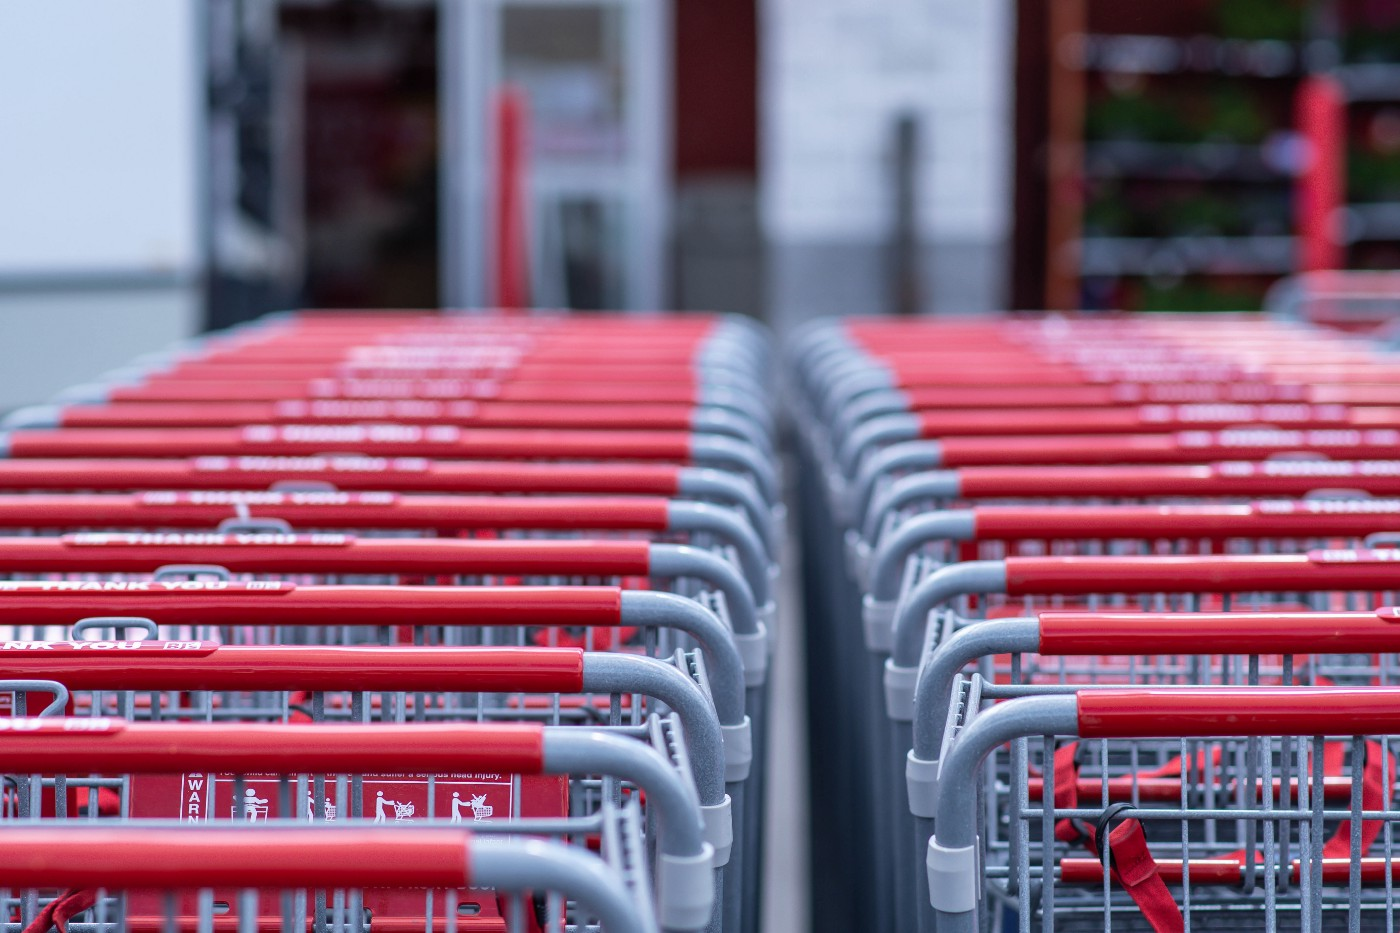 Shopping carts lined up